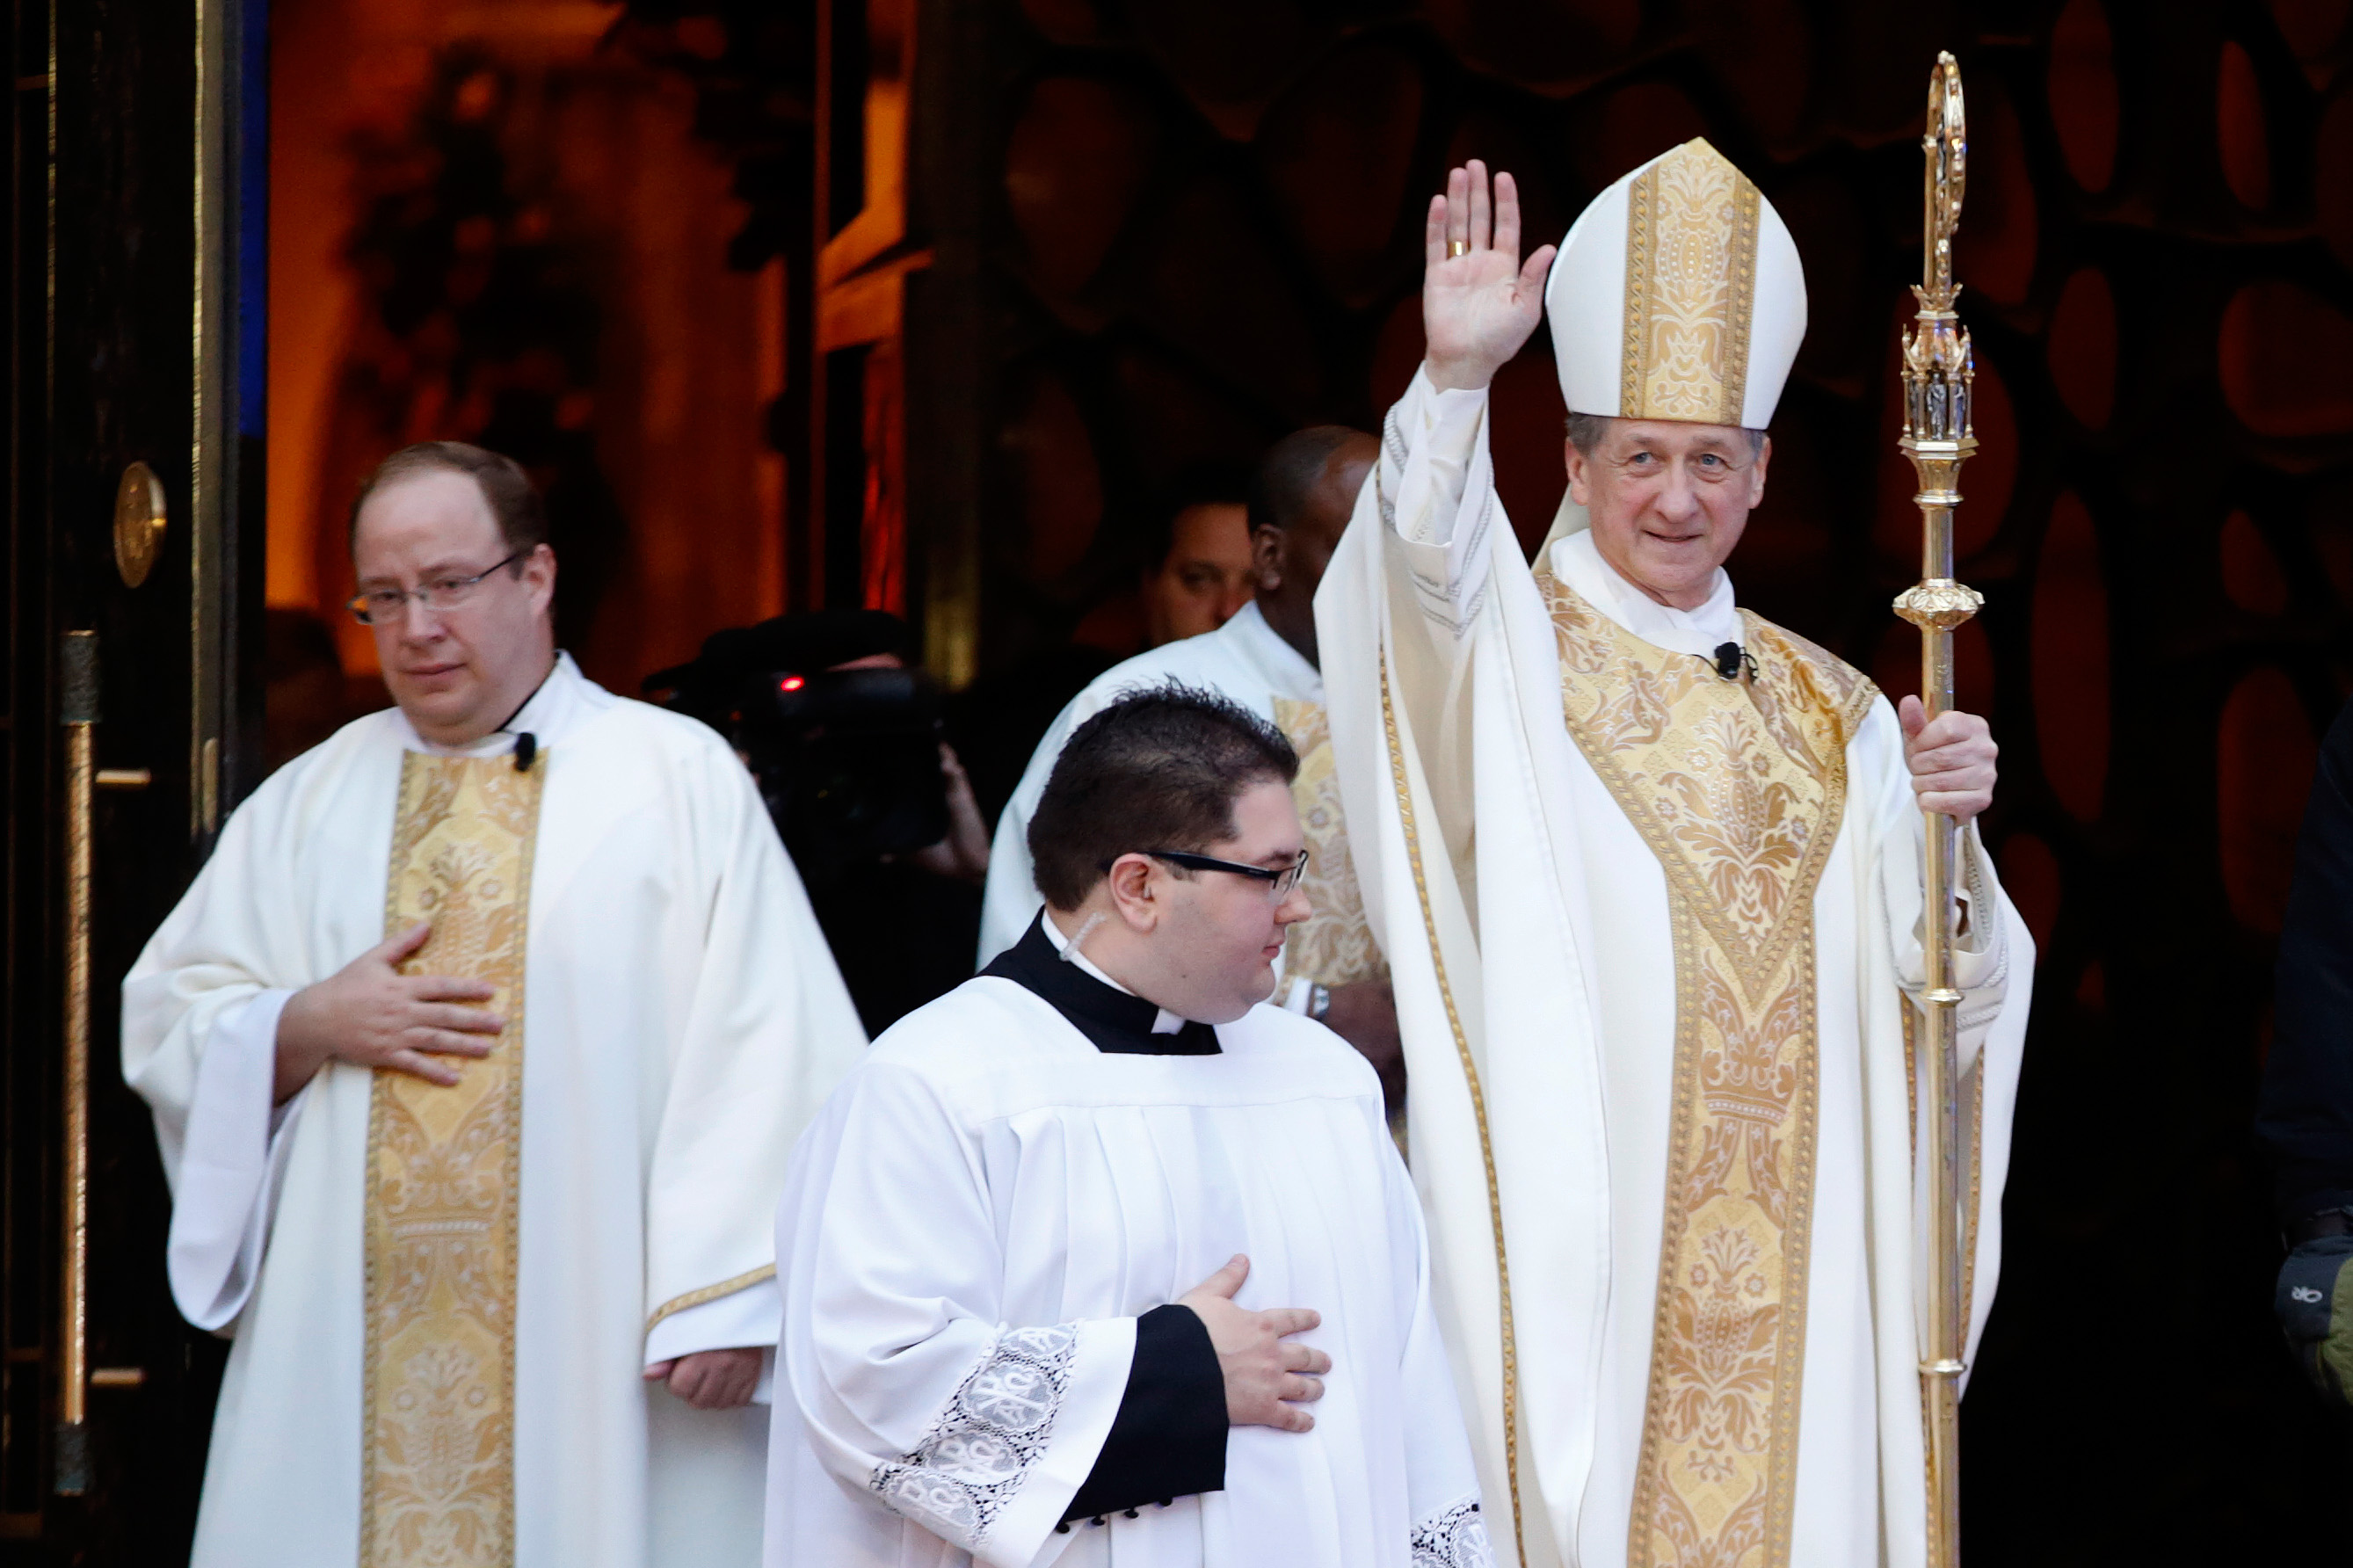 Bishop Blase Cupich, Pope Francis' first major appointment in the hierarchy of the U.S. Catholic Church, exits Holy Name Cathedral after his installation as the new archbishop in Chicago November 18, 2014. Cupich, 65, who is seen as a moderate, succeeds the more conservative Cardinal Francis George, 77, who is retiring. REUTERS/Andrew Nelles